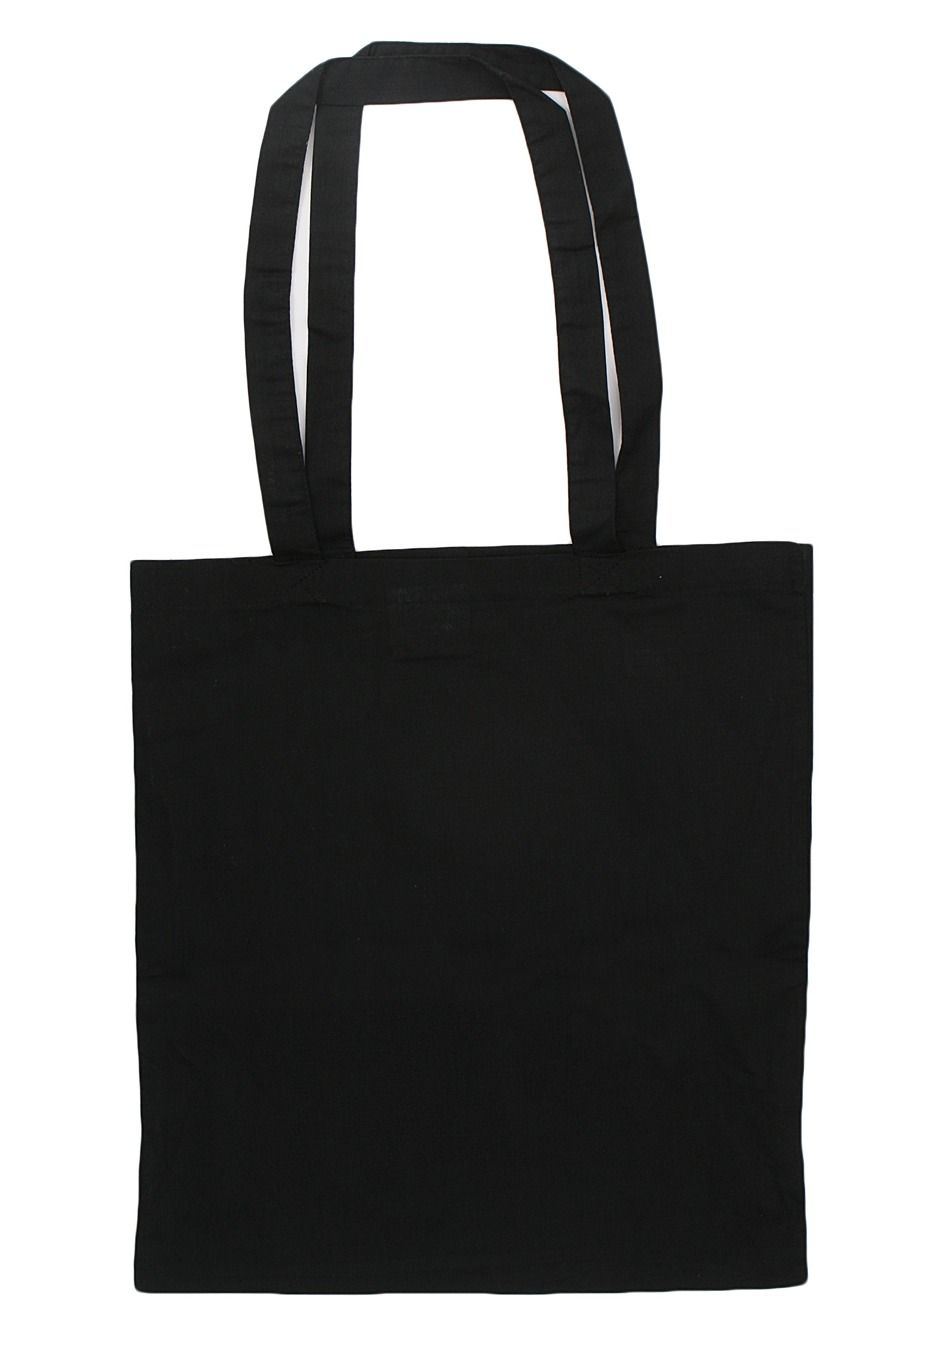 Black Tote Bag Mock up Tmplate Pinterest More Mockup